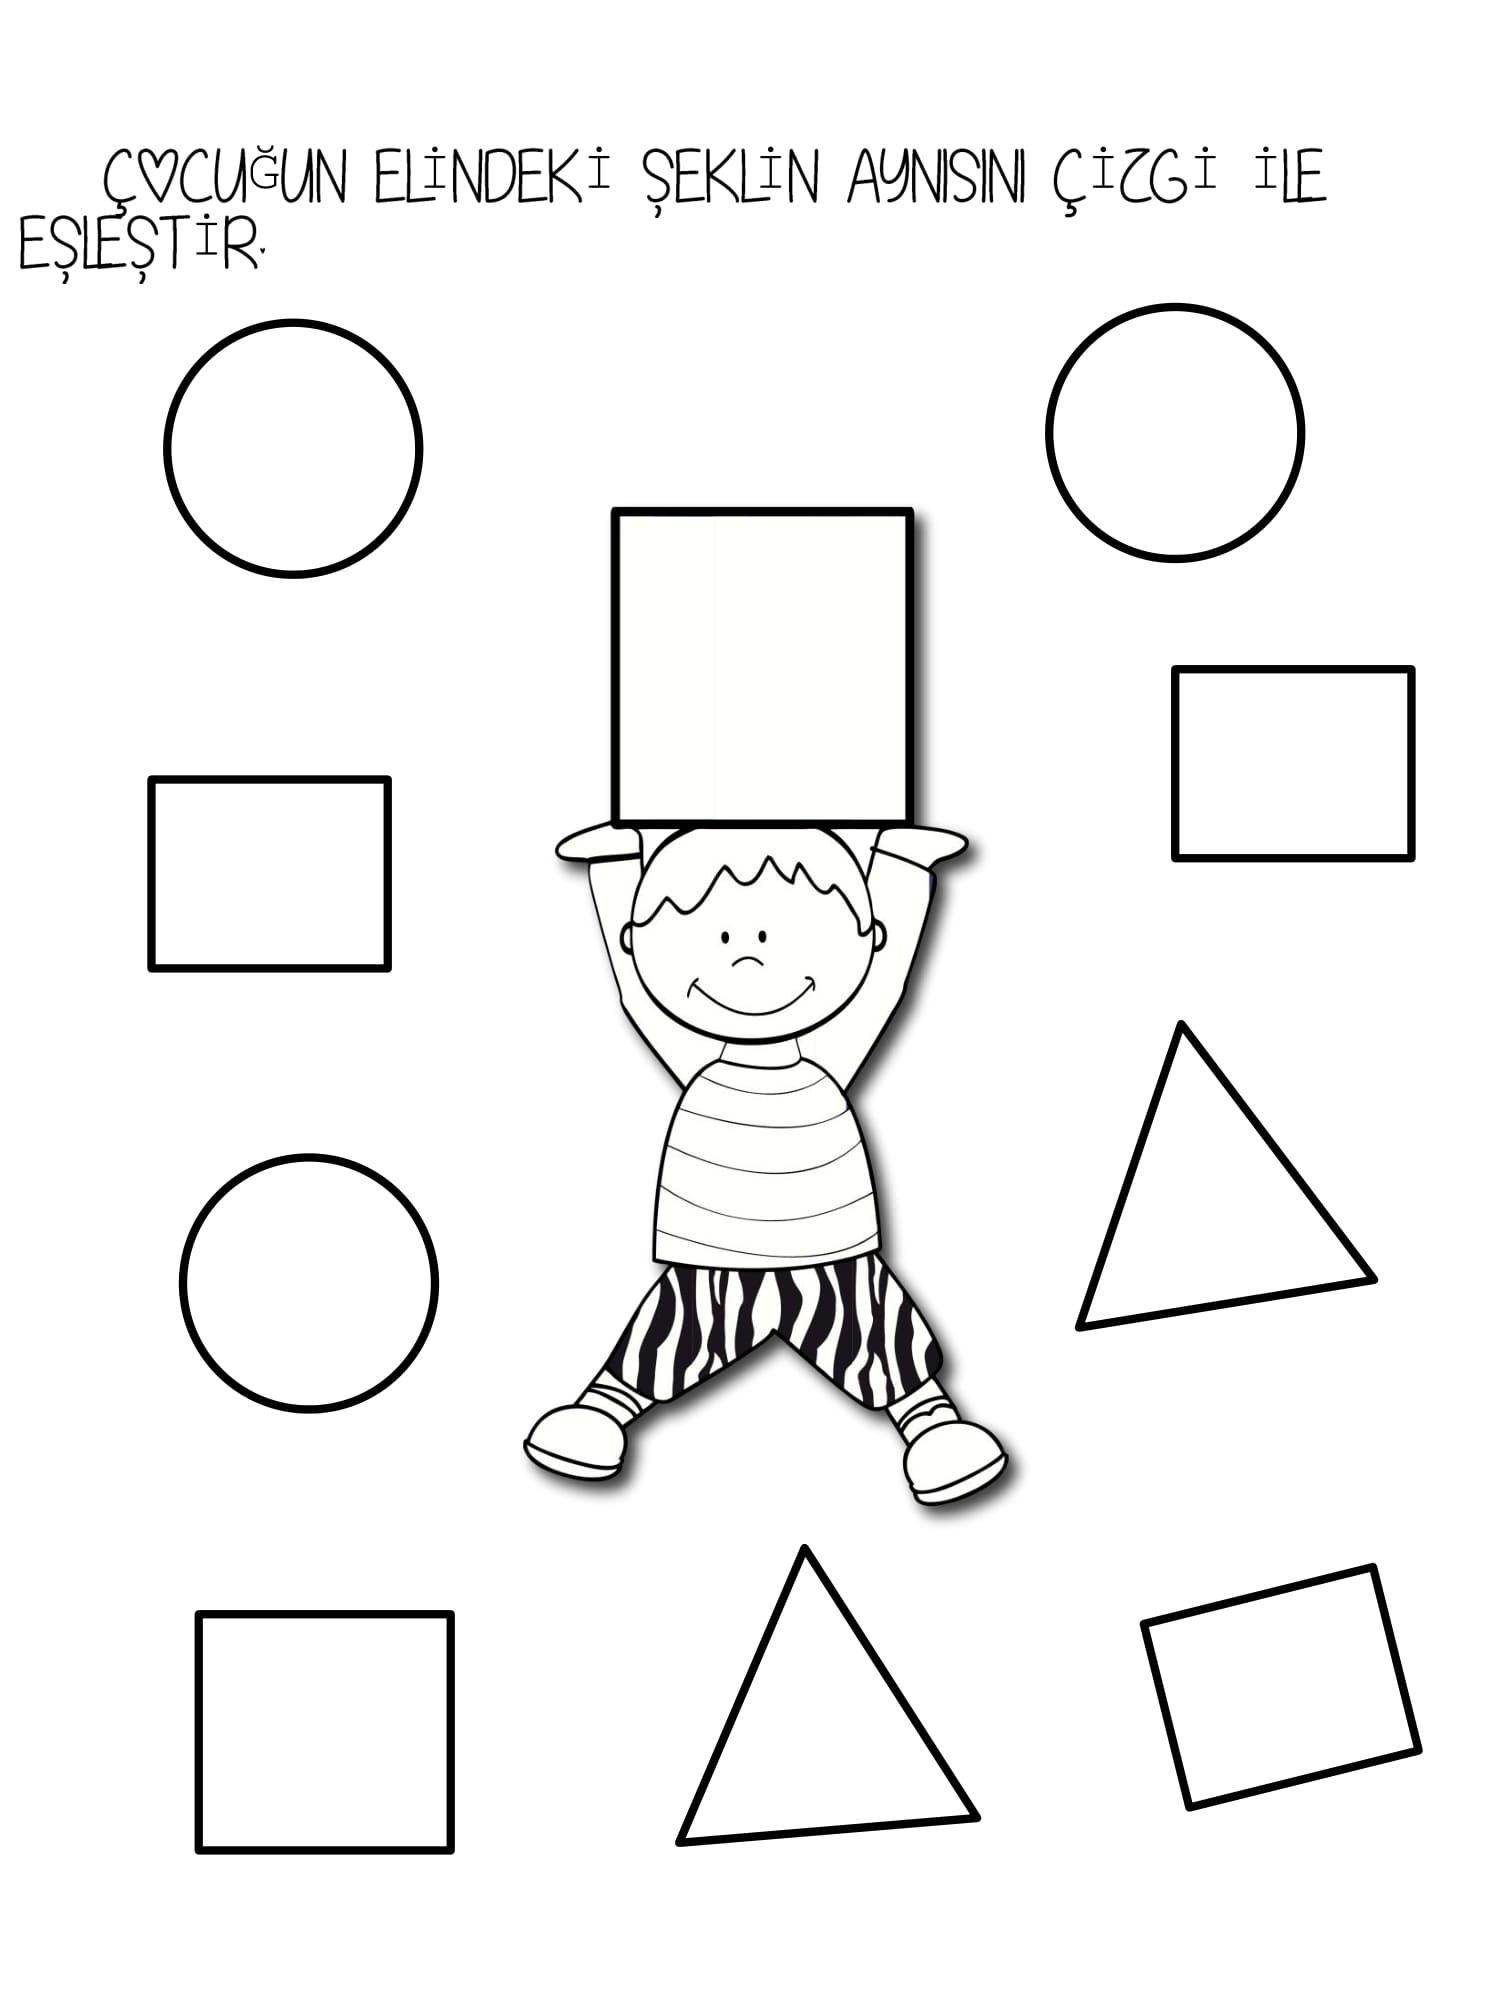 Kare şekli Etkinlikasigi Working Pages Preschool Worksheets